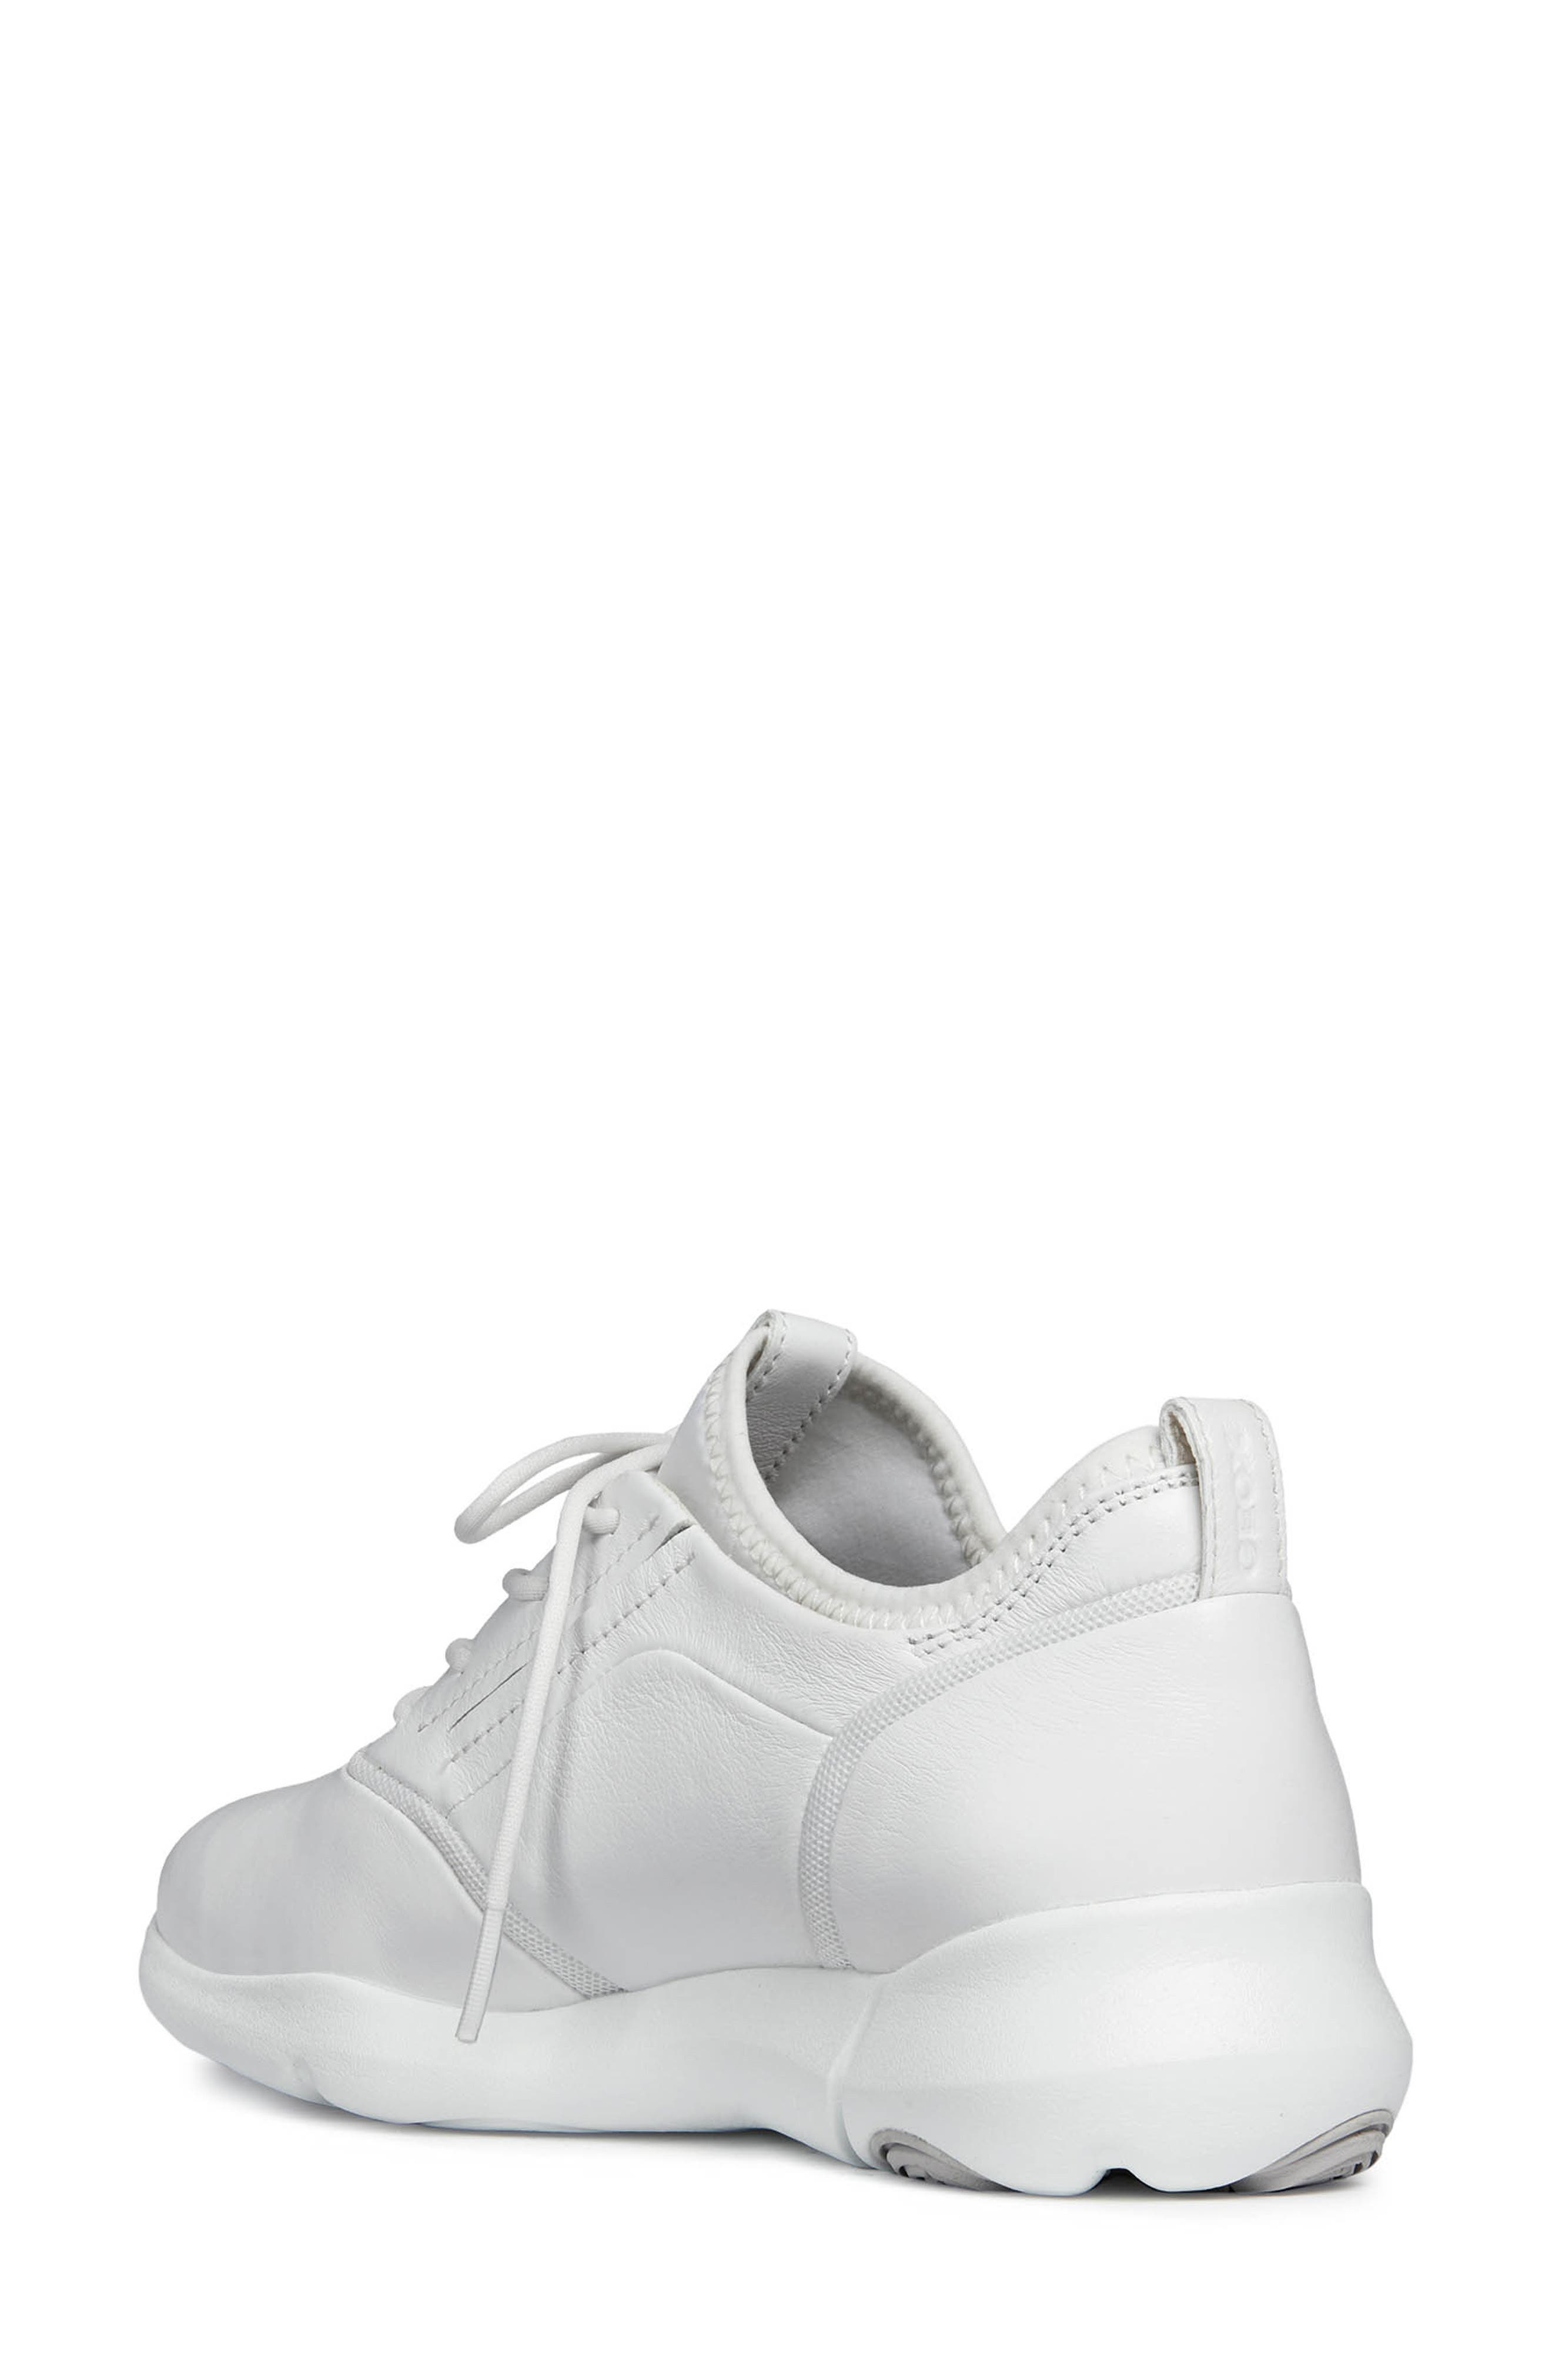 Nebula S 2 Low Top Sneaker,                             Alternate thumbnail 2, color,                             WHITE LEATHER